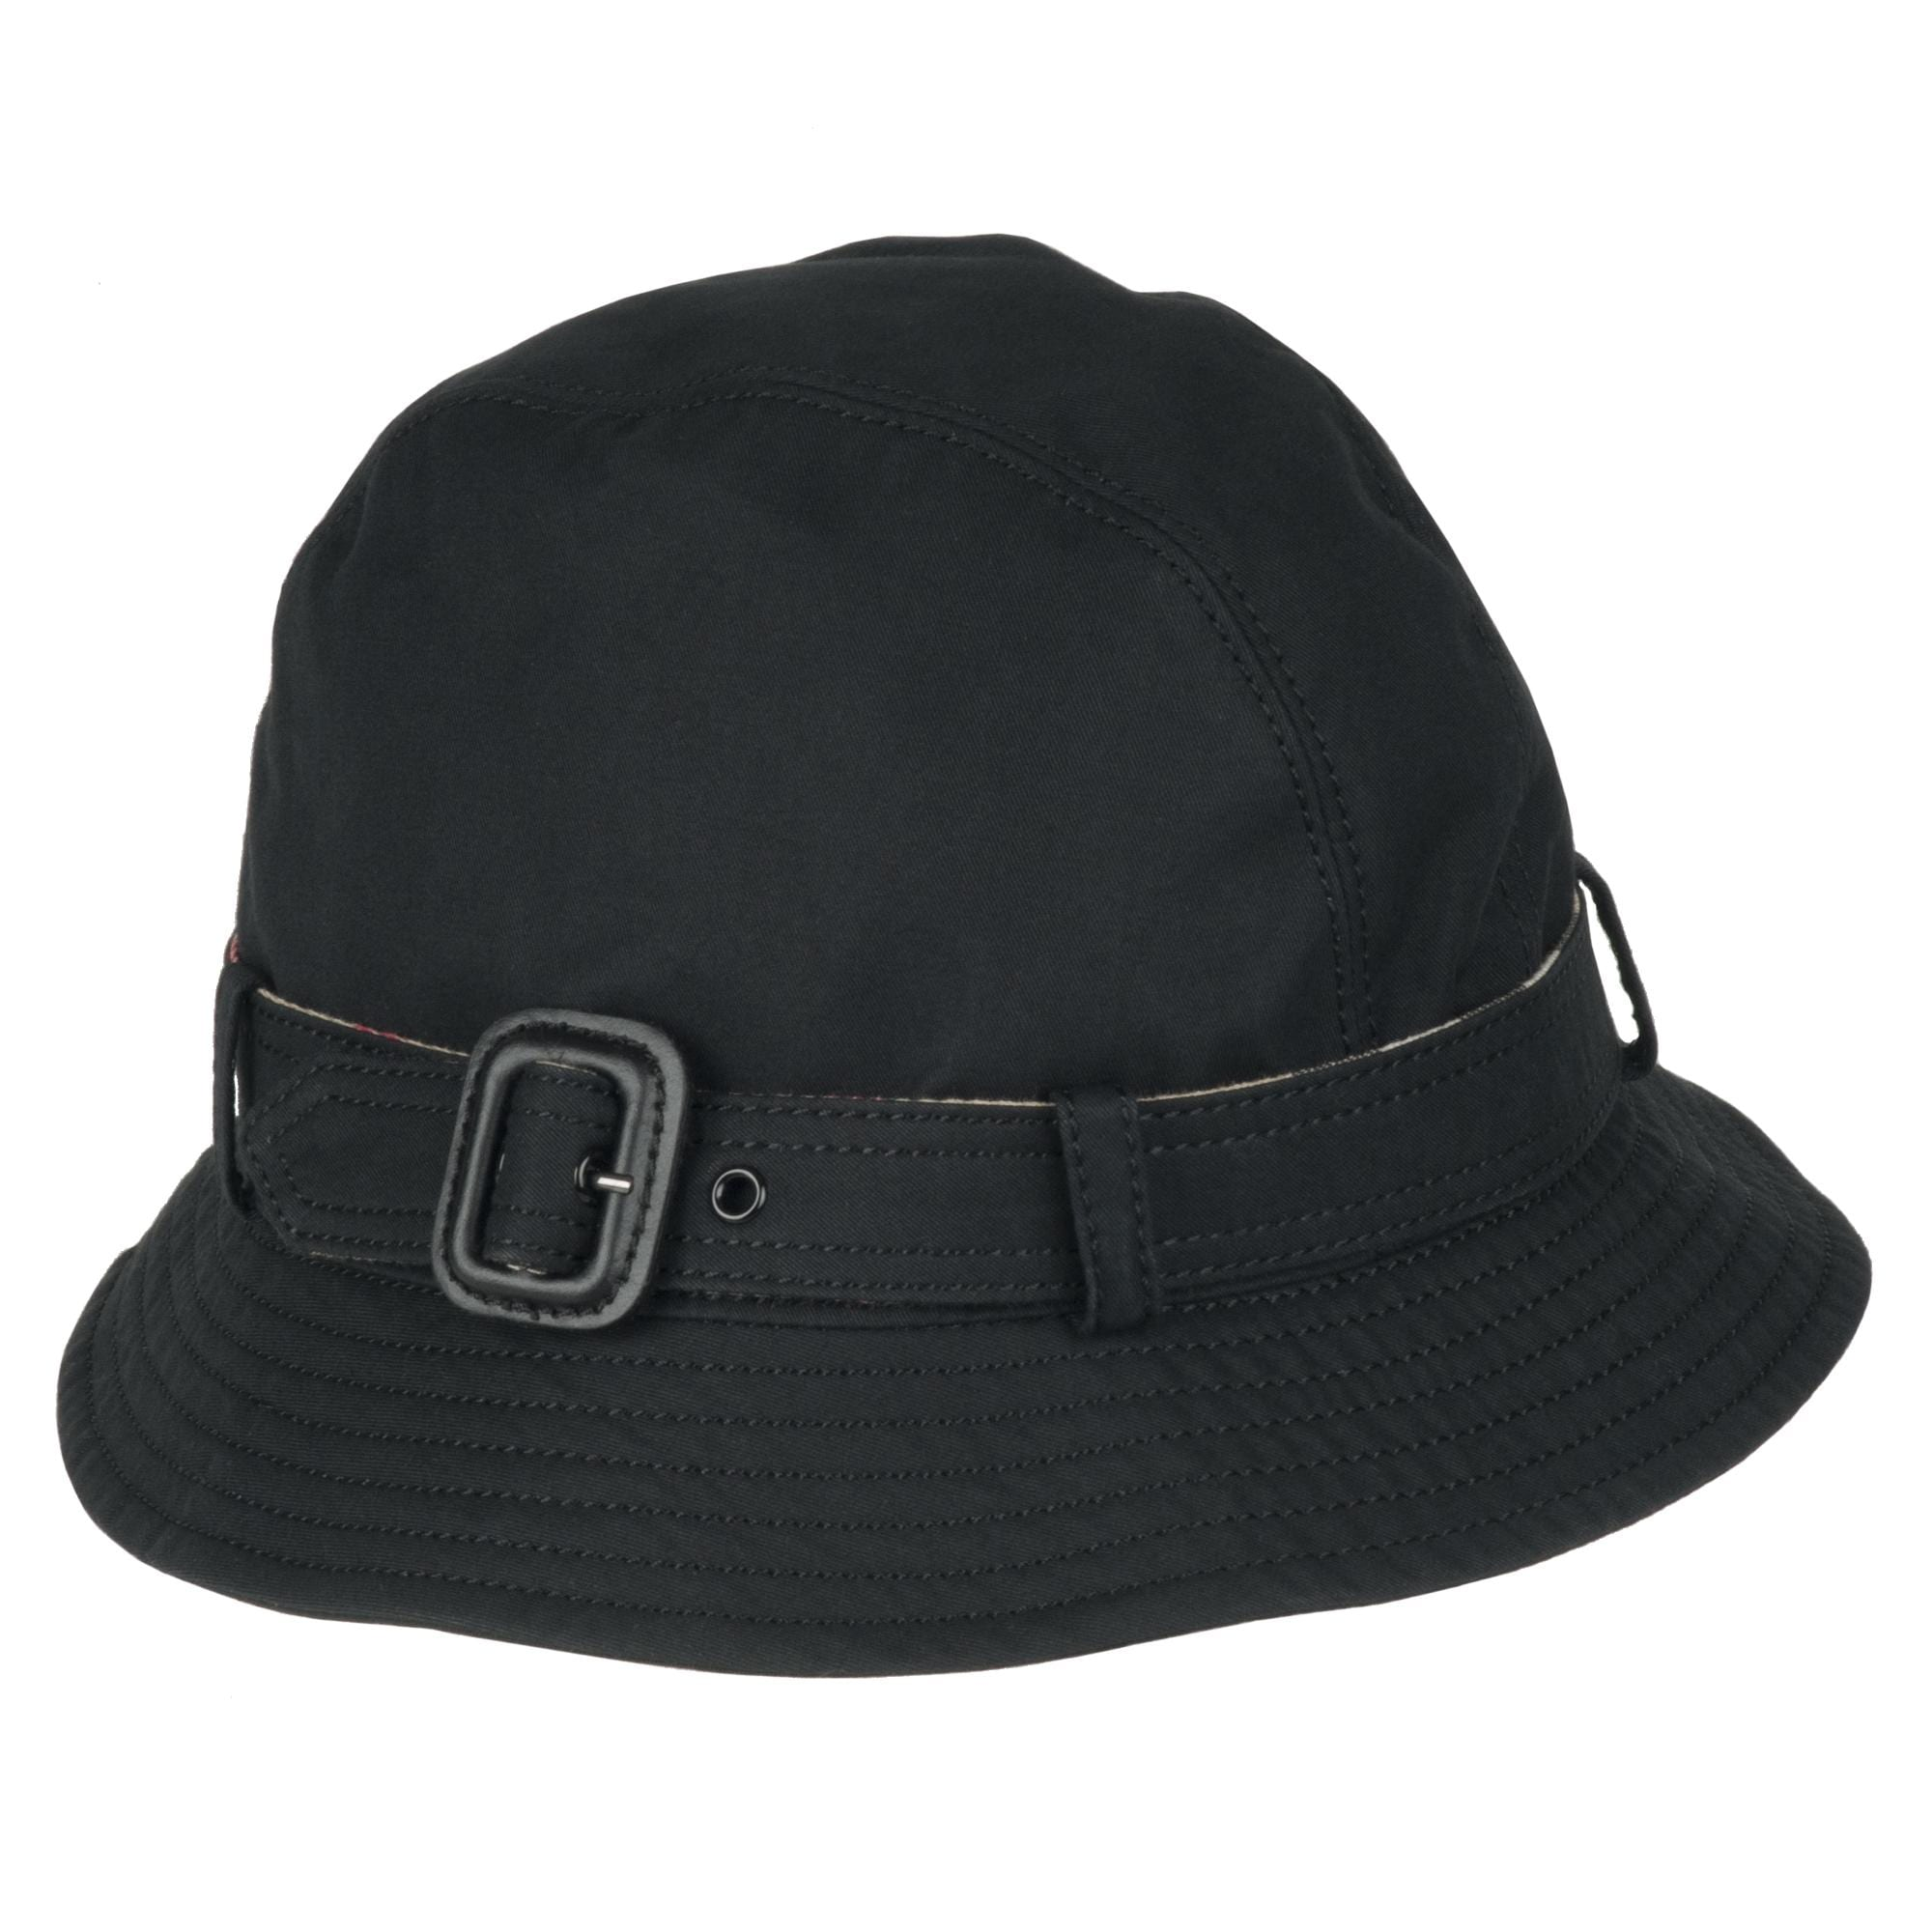 28ff1ce4938 Shop Burberry Cotton Black Belted Bucket Hat - Ships To Canada ...